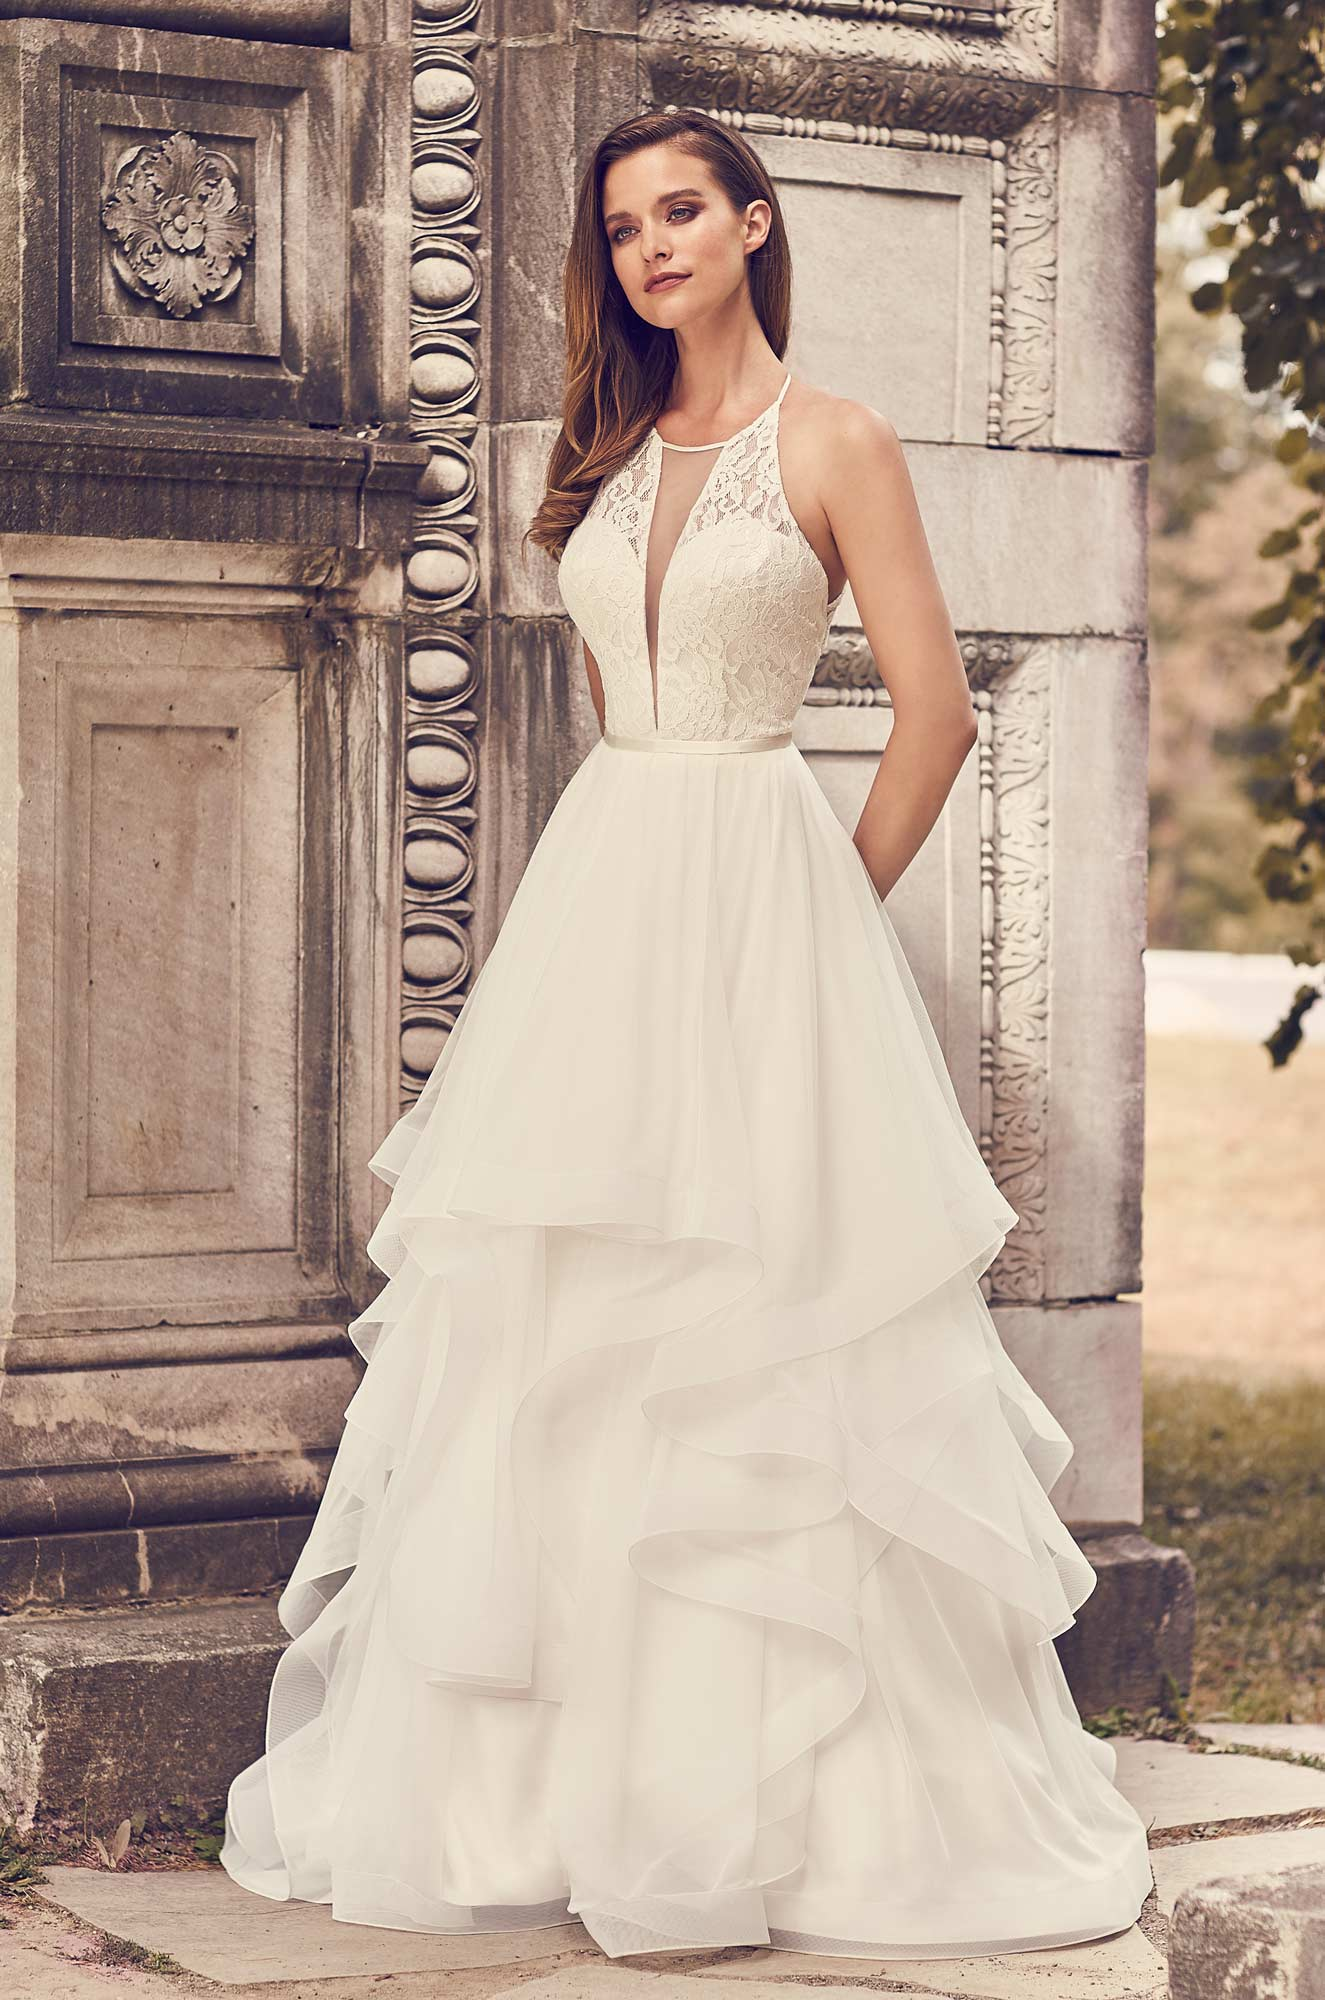 Tulle Skirt Halter Neckline Wedding Dress – Style #2241 | Mikaella Bridal